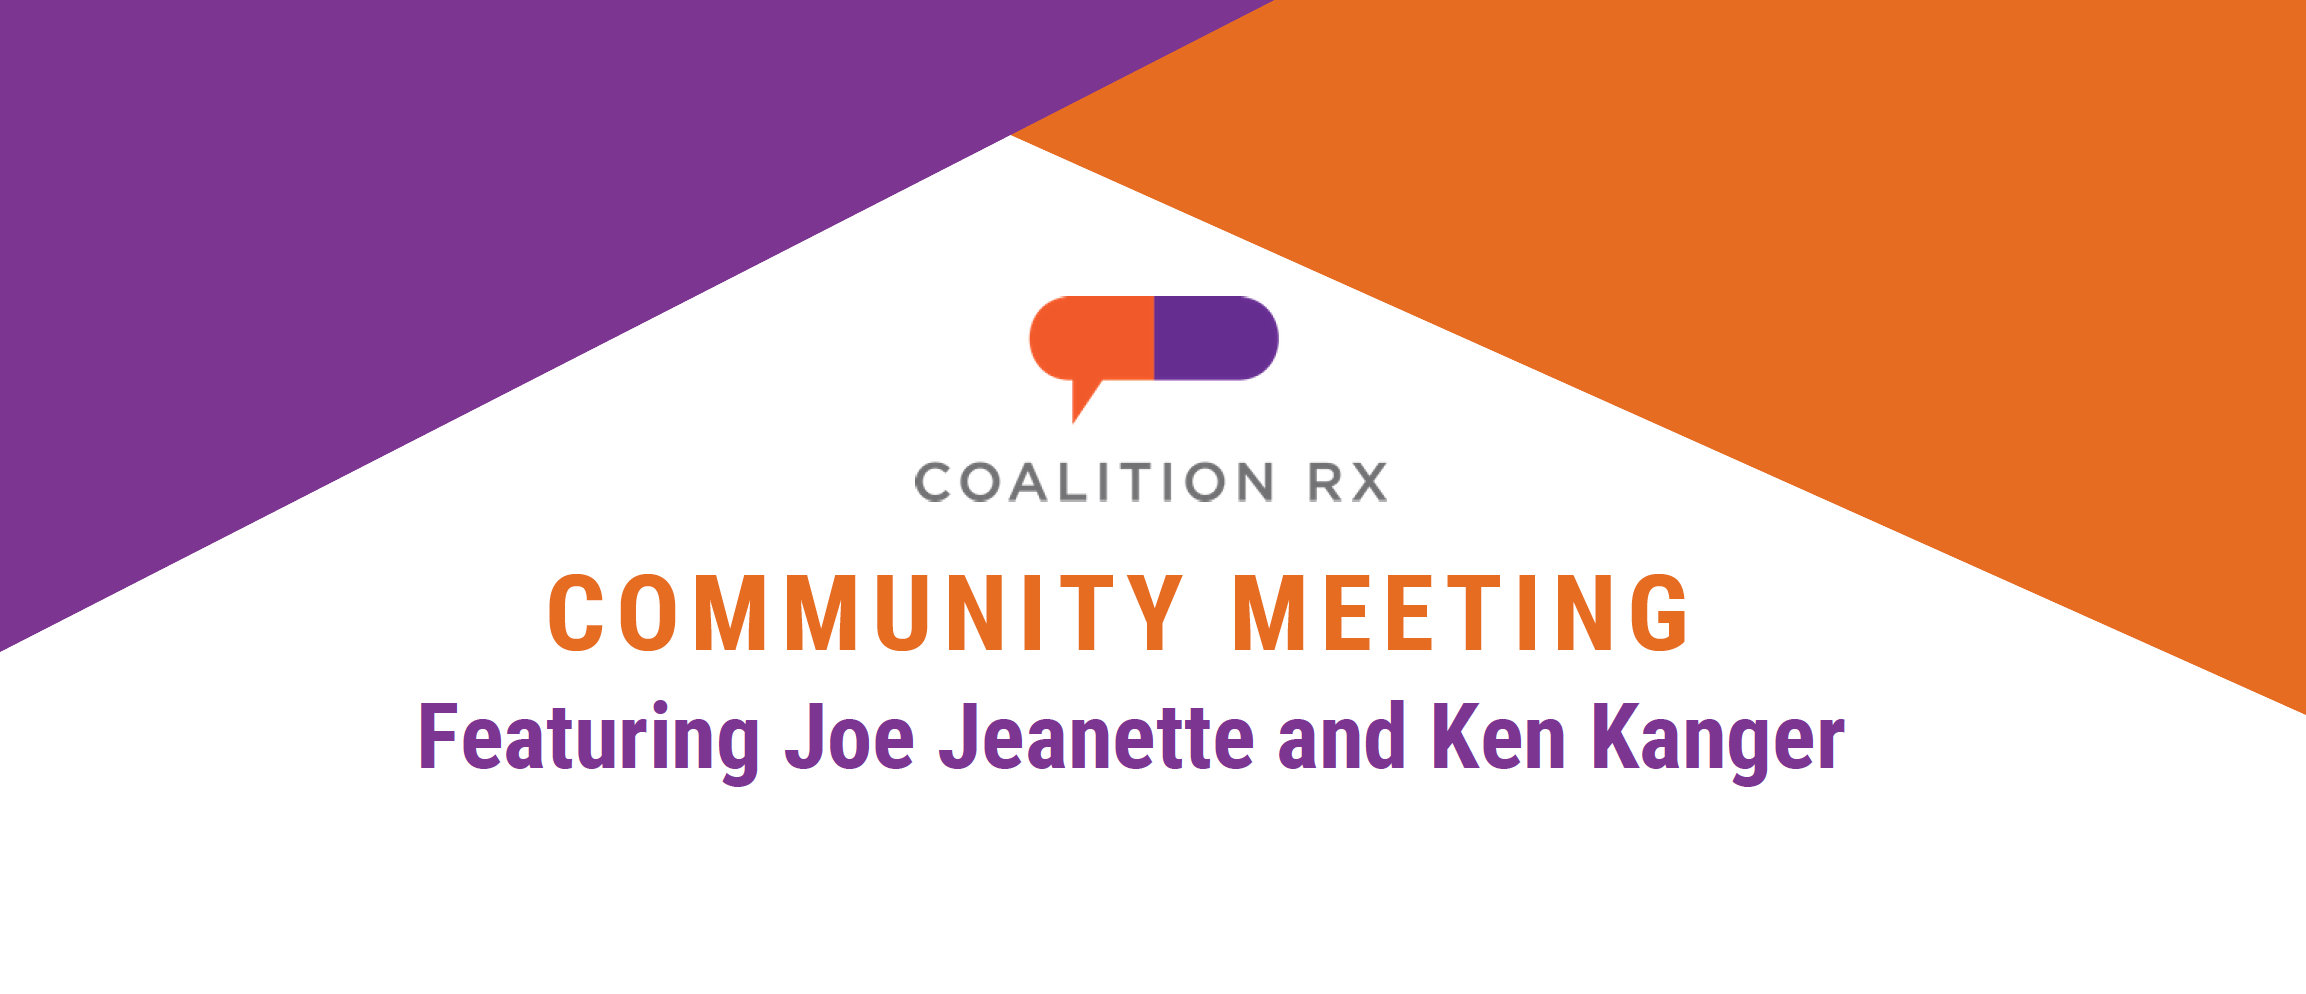 Community Meeting featuring Joe Jeanette and Ken Kanger